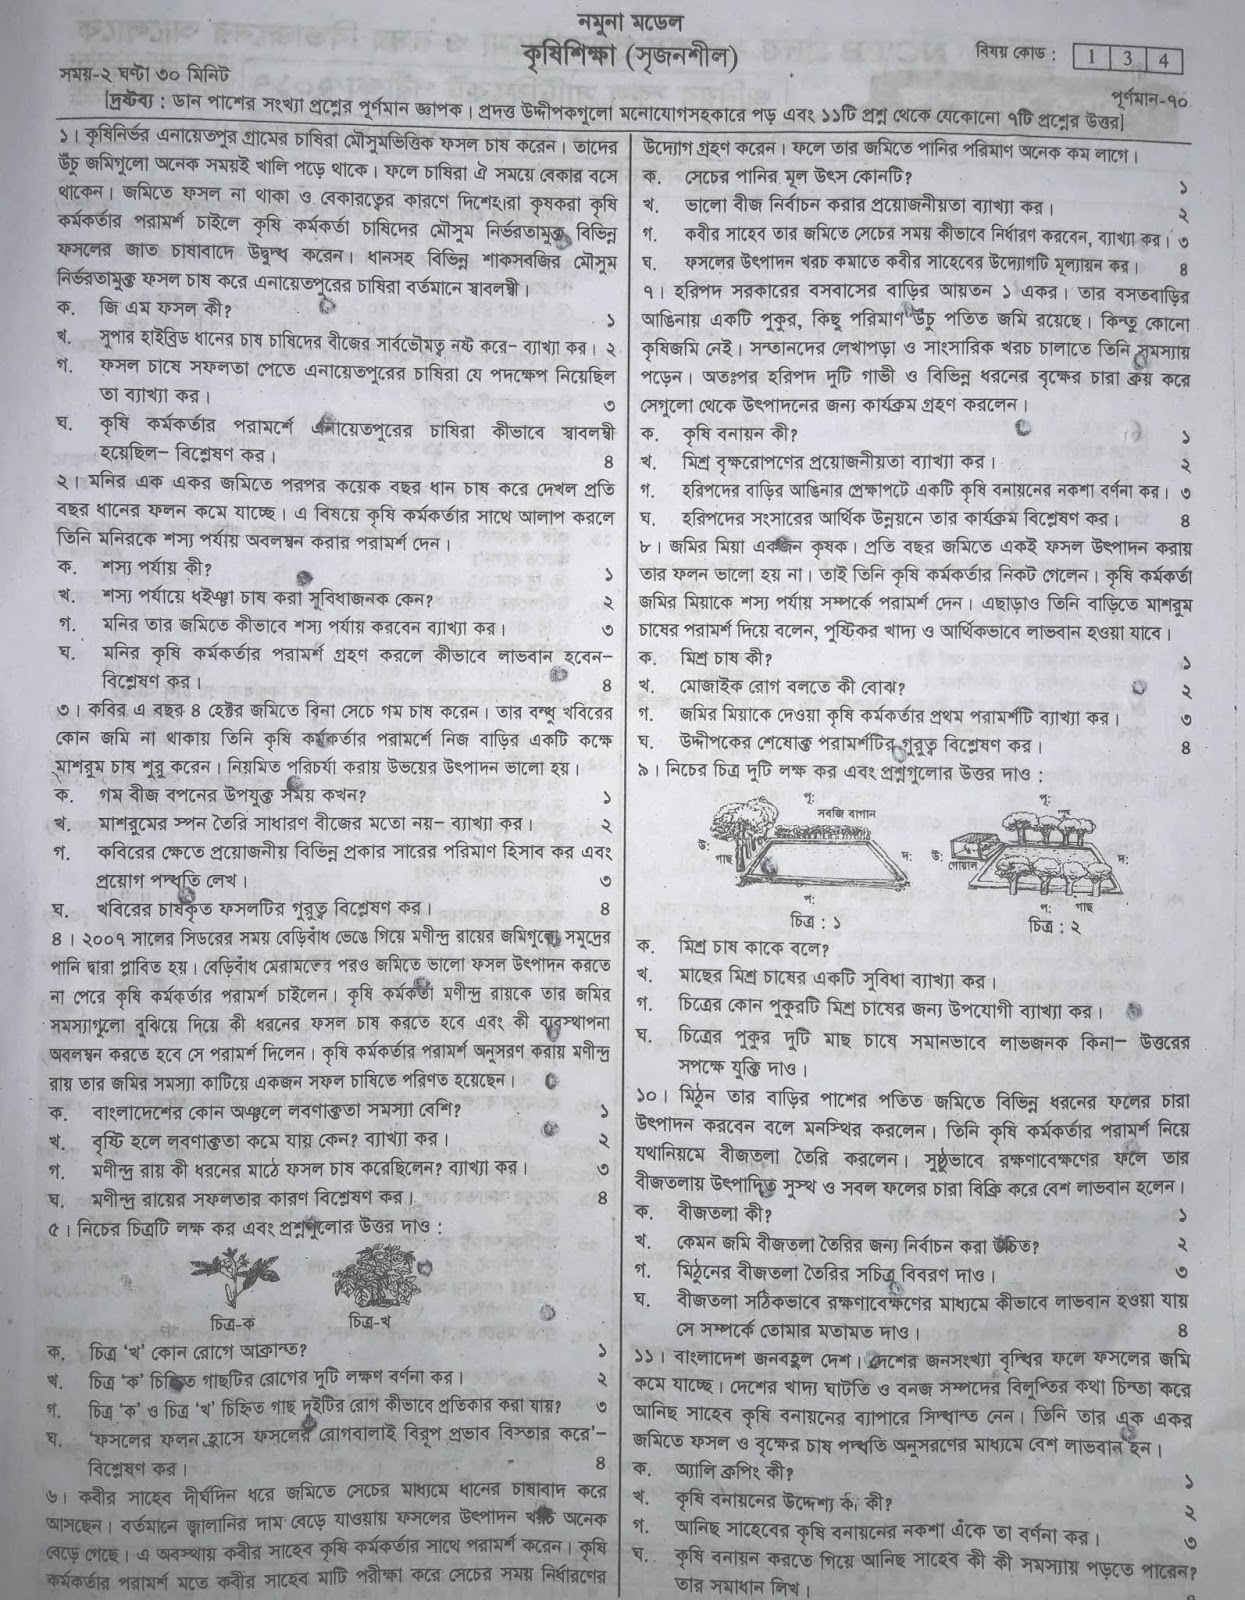 jsc Agricultural Studies suggestion, exam question paper, model question, mcq question, question pattern, preparation for dhaka board, all boards